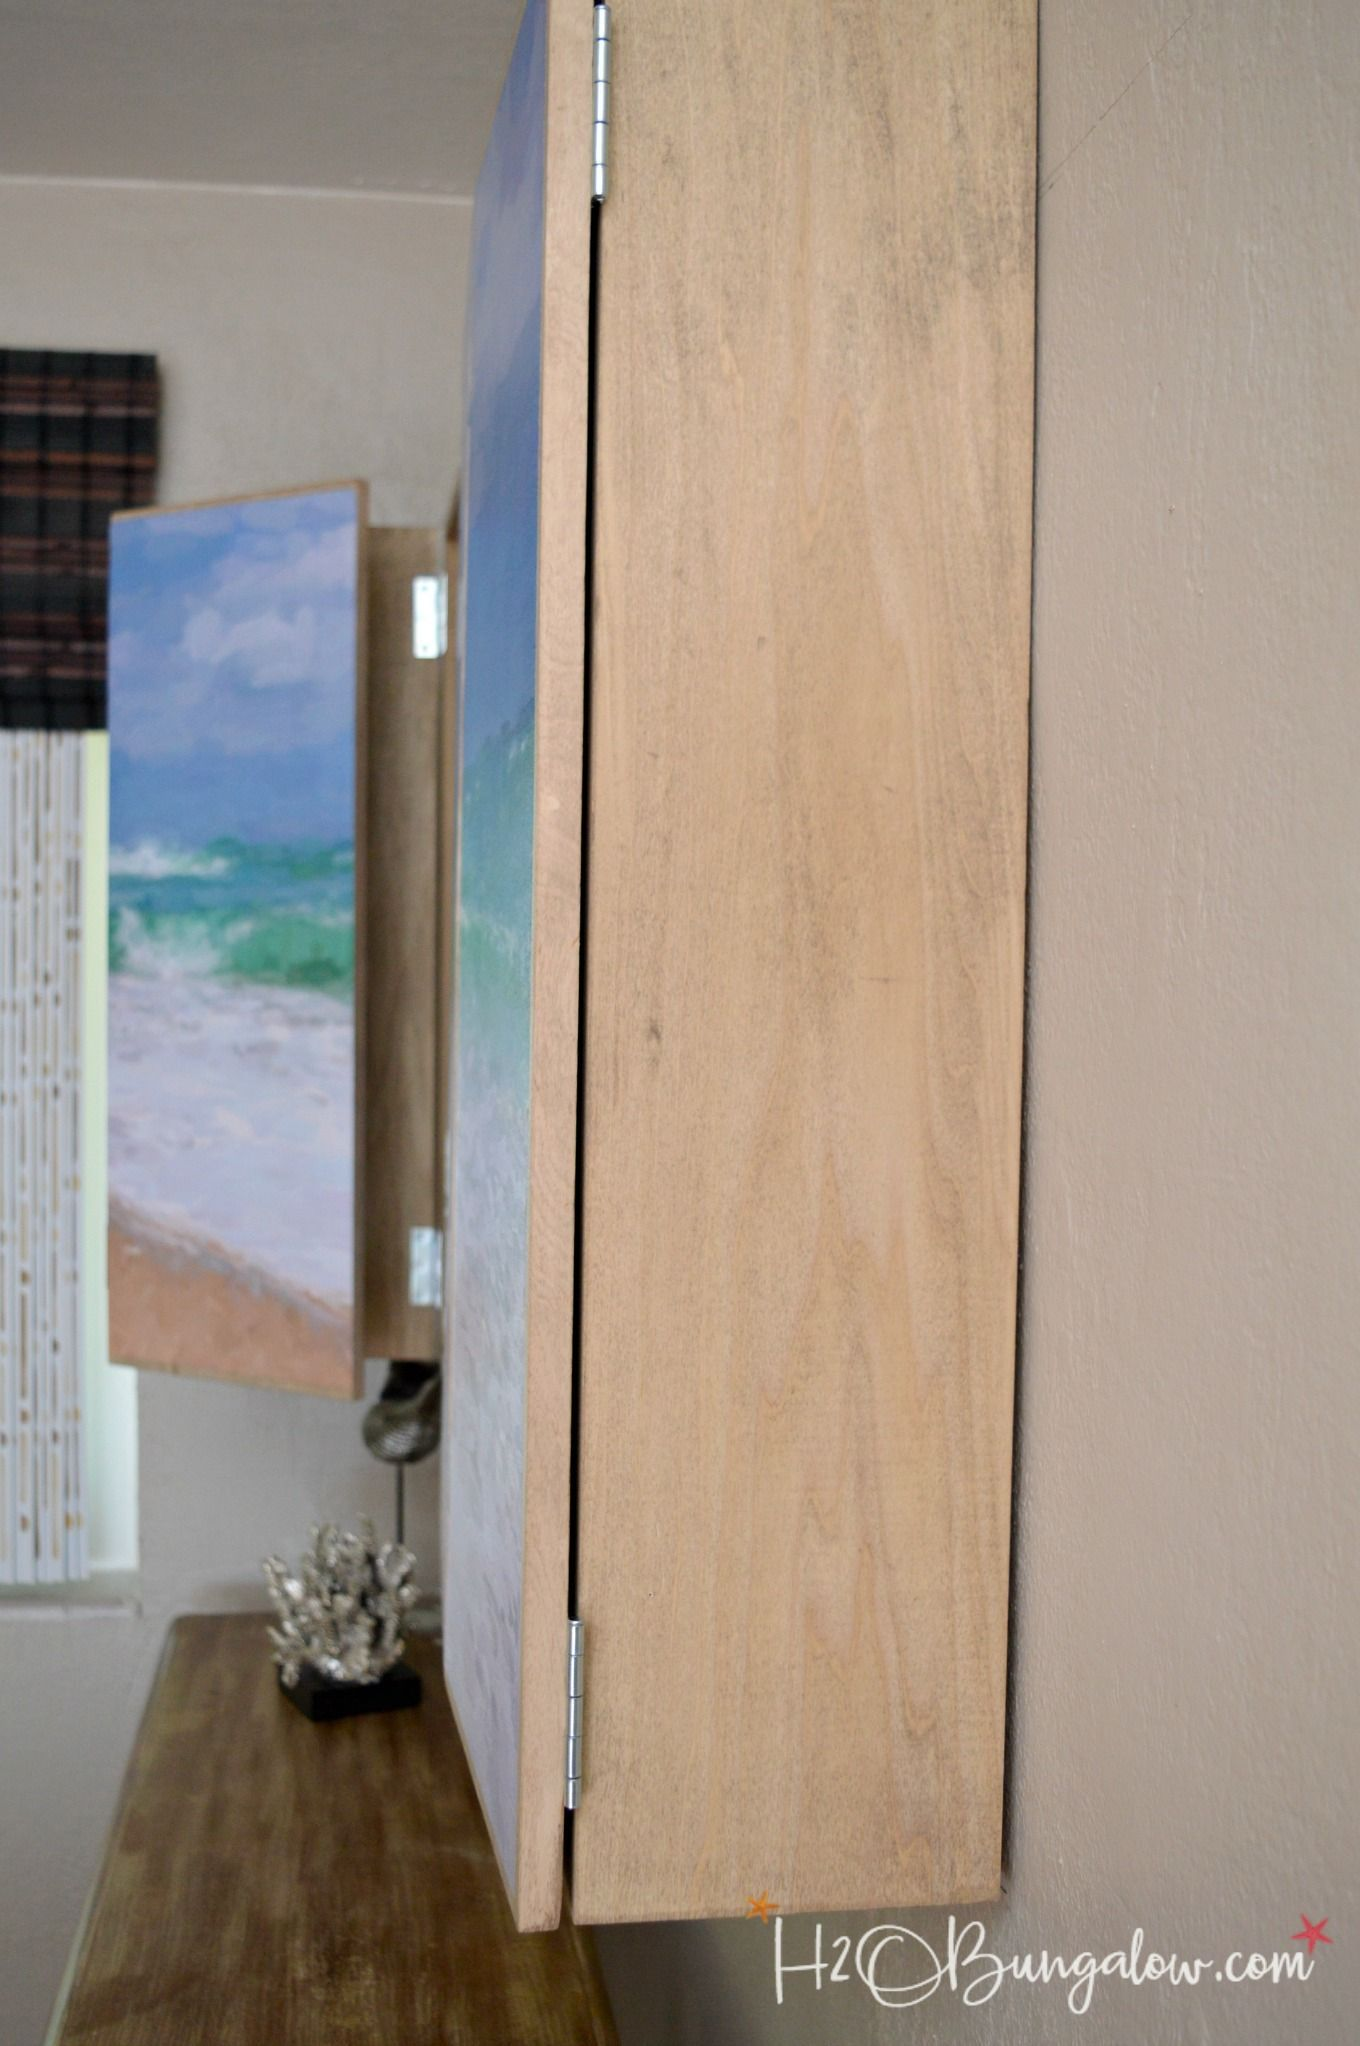 Free Plans For A Diy Wall Mounted Tv Cabinet Build A Cabinet To